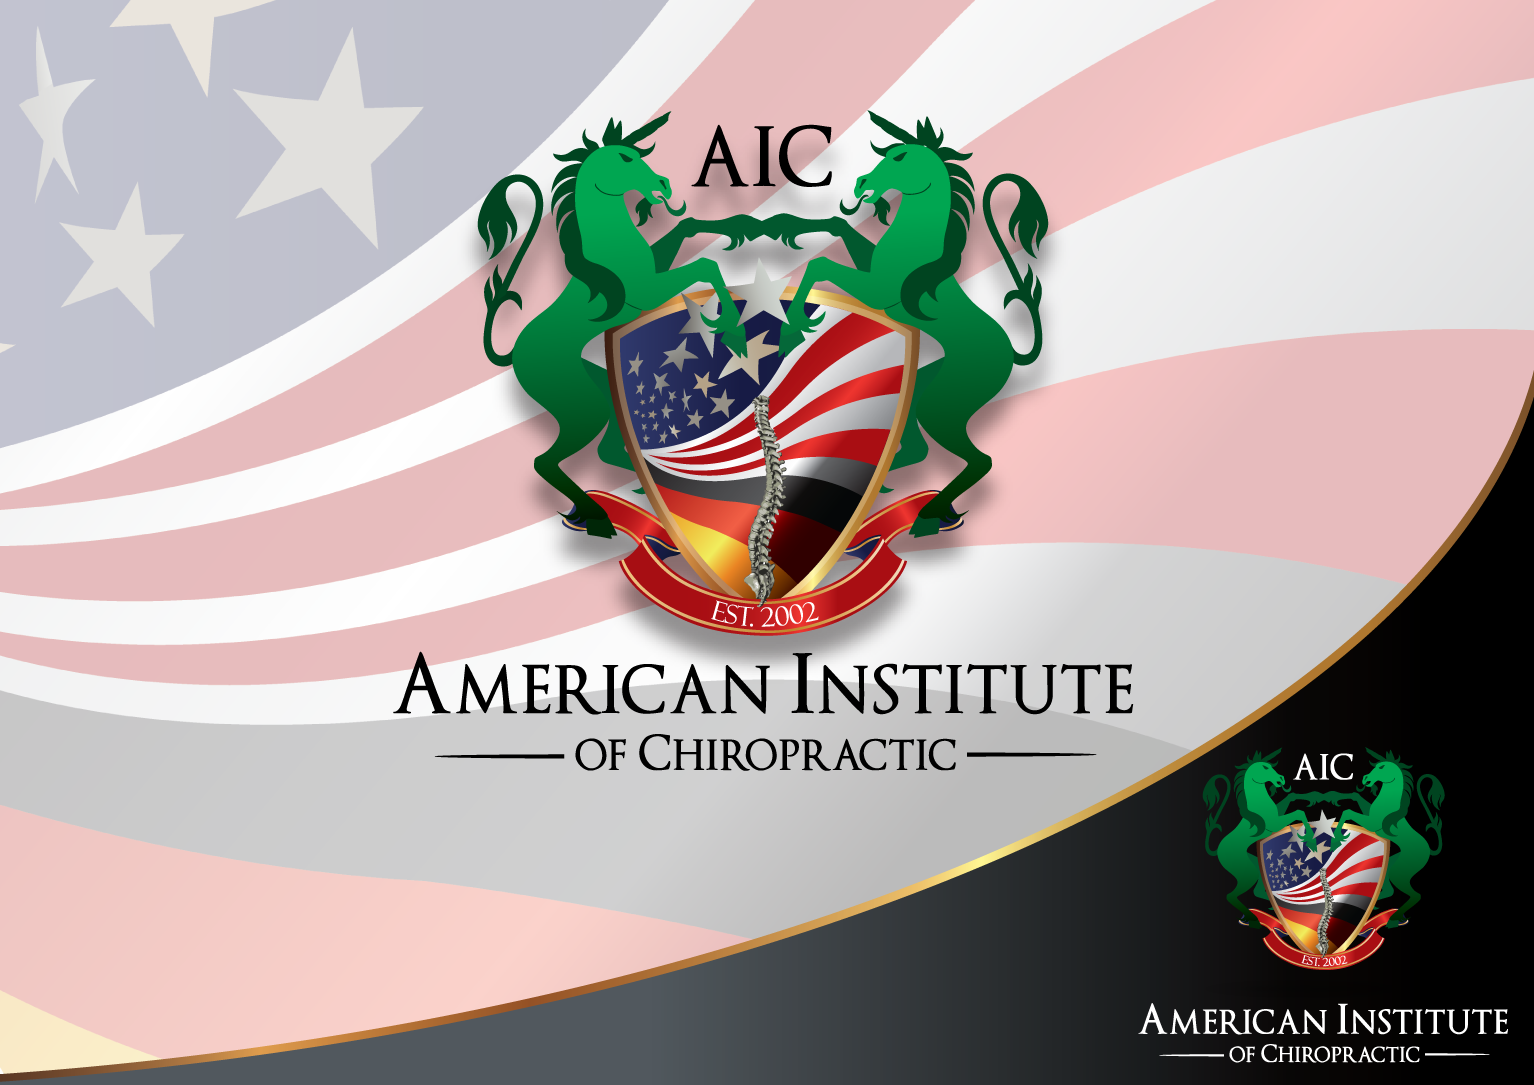 Help American Institute of Chiropraktik with a new logo